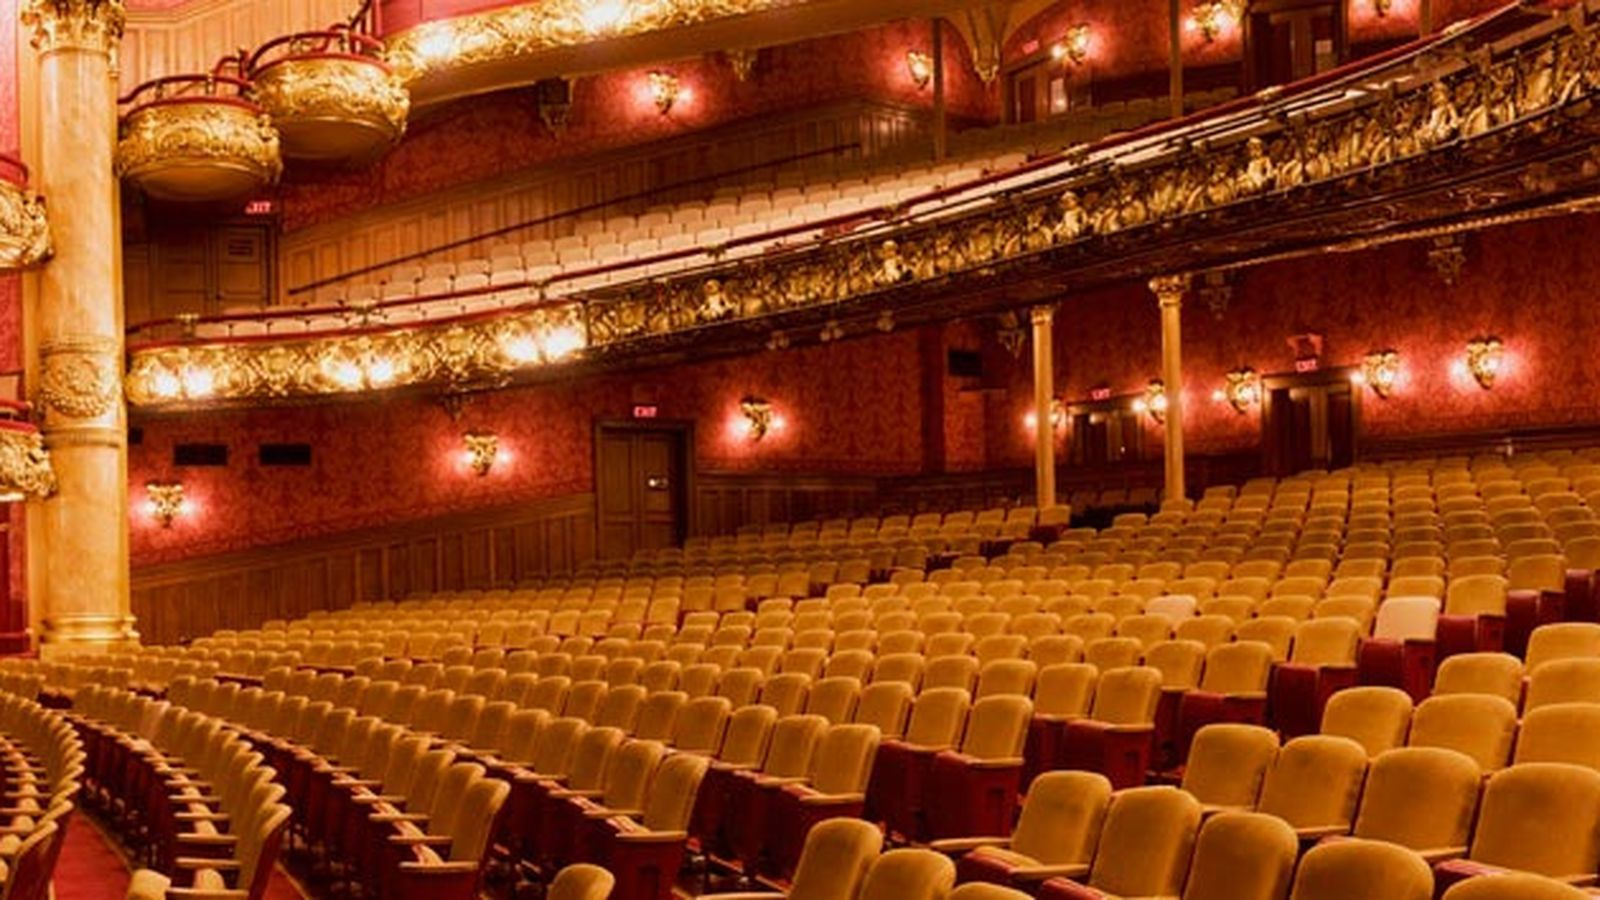 Emerson College Los Angeles >> Boston's Colonial Theatre to reopen following deal with London drama group - Curbed Boston